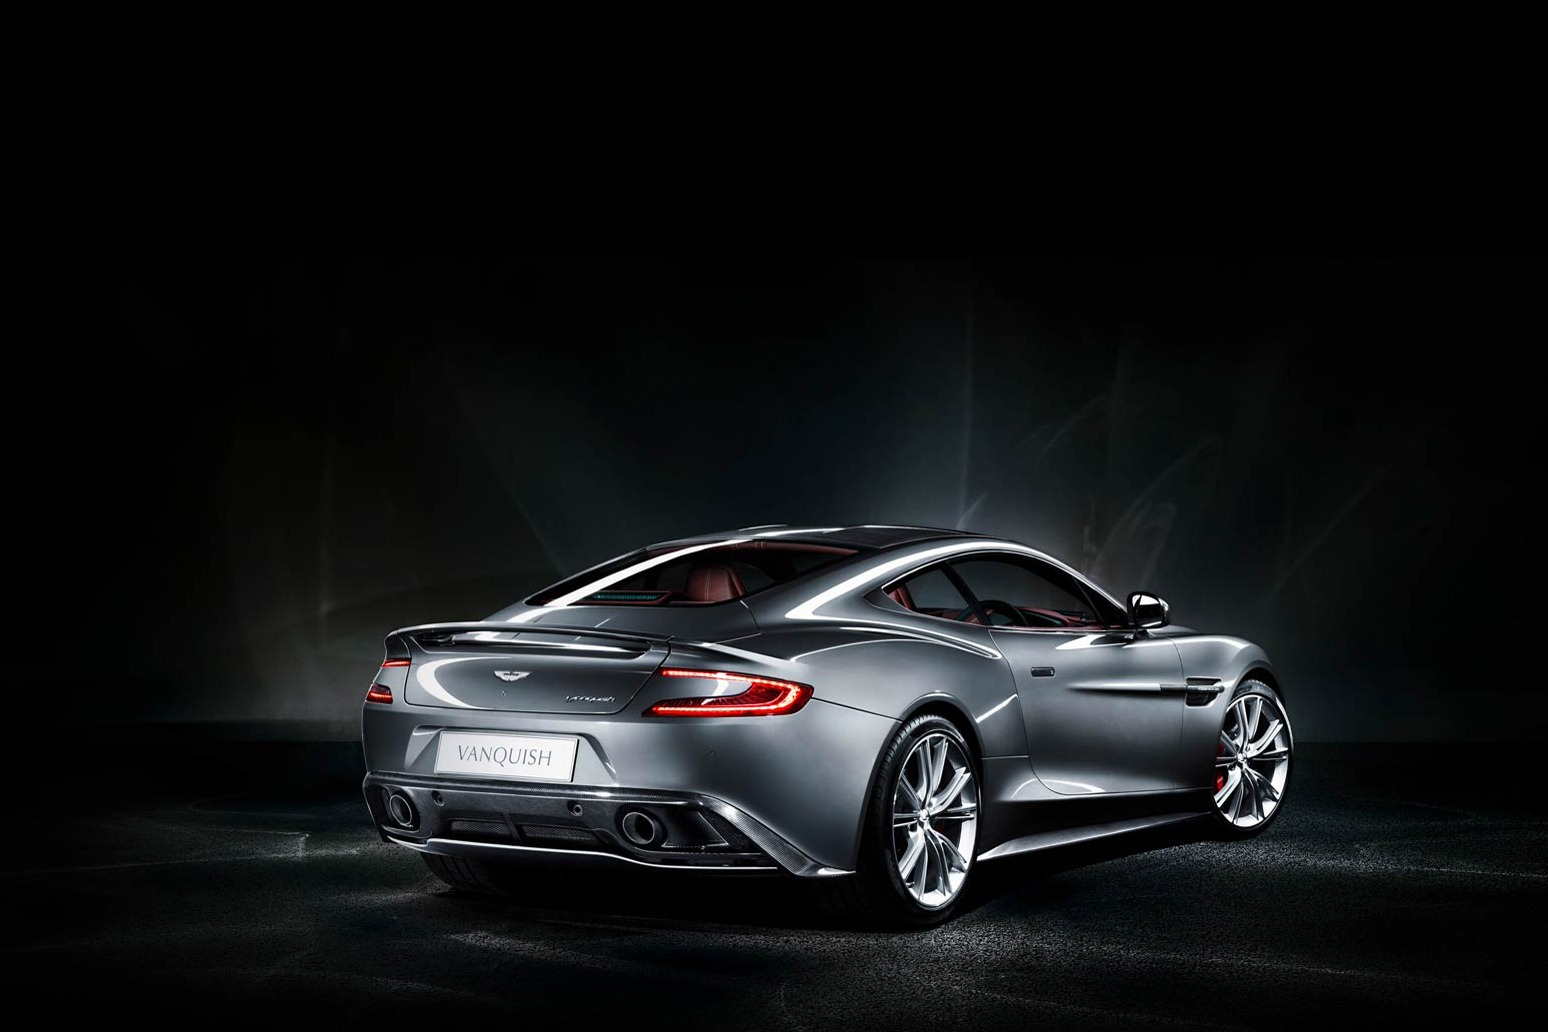 aston martin vanquish the superslice. Black Bedroom Furniture Sets. Home Design Ideas